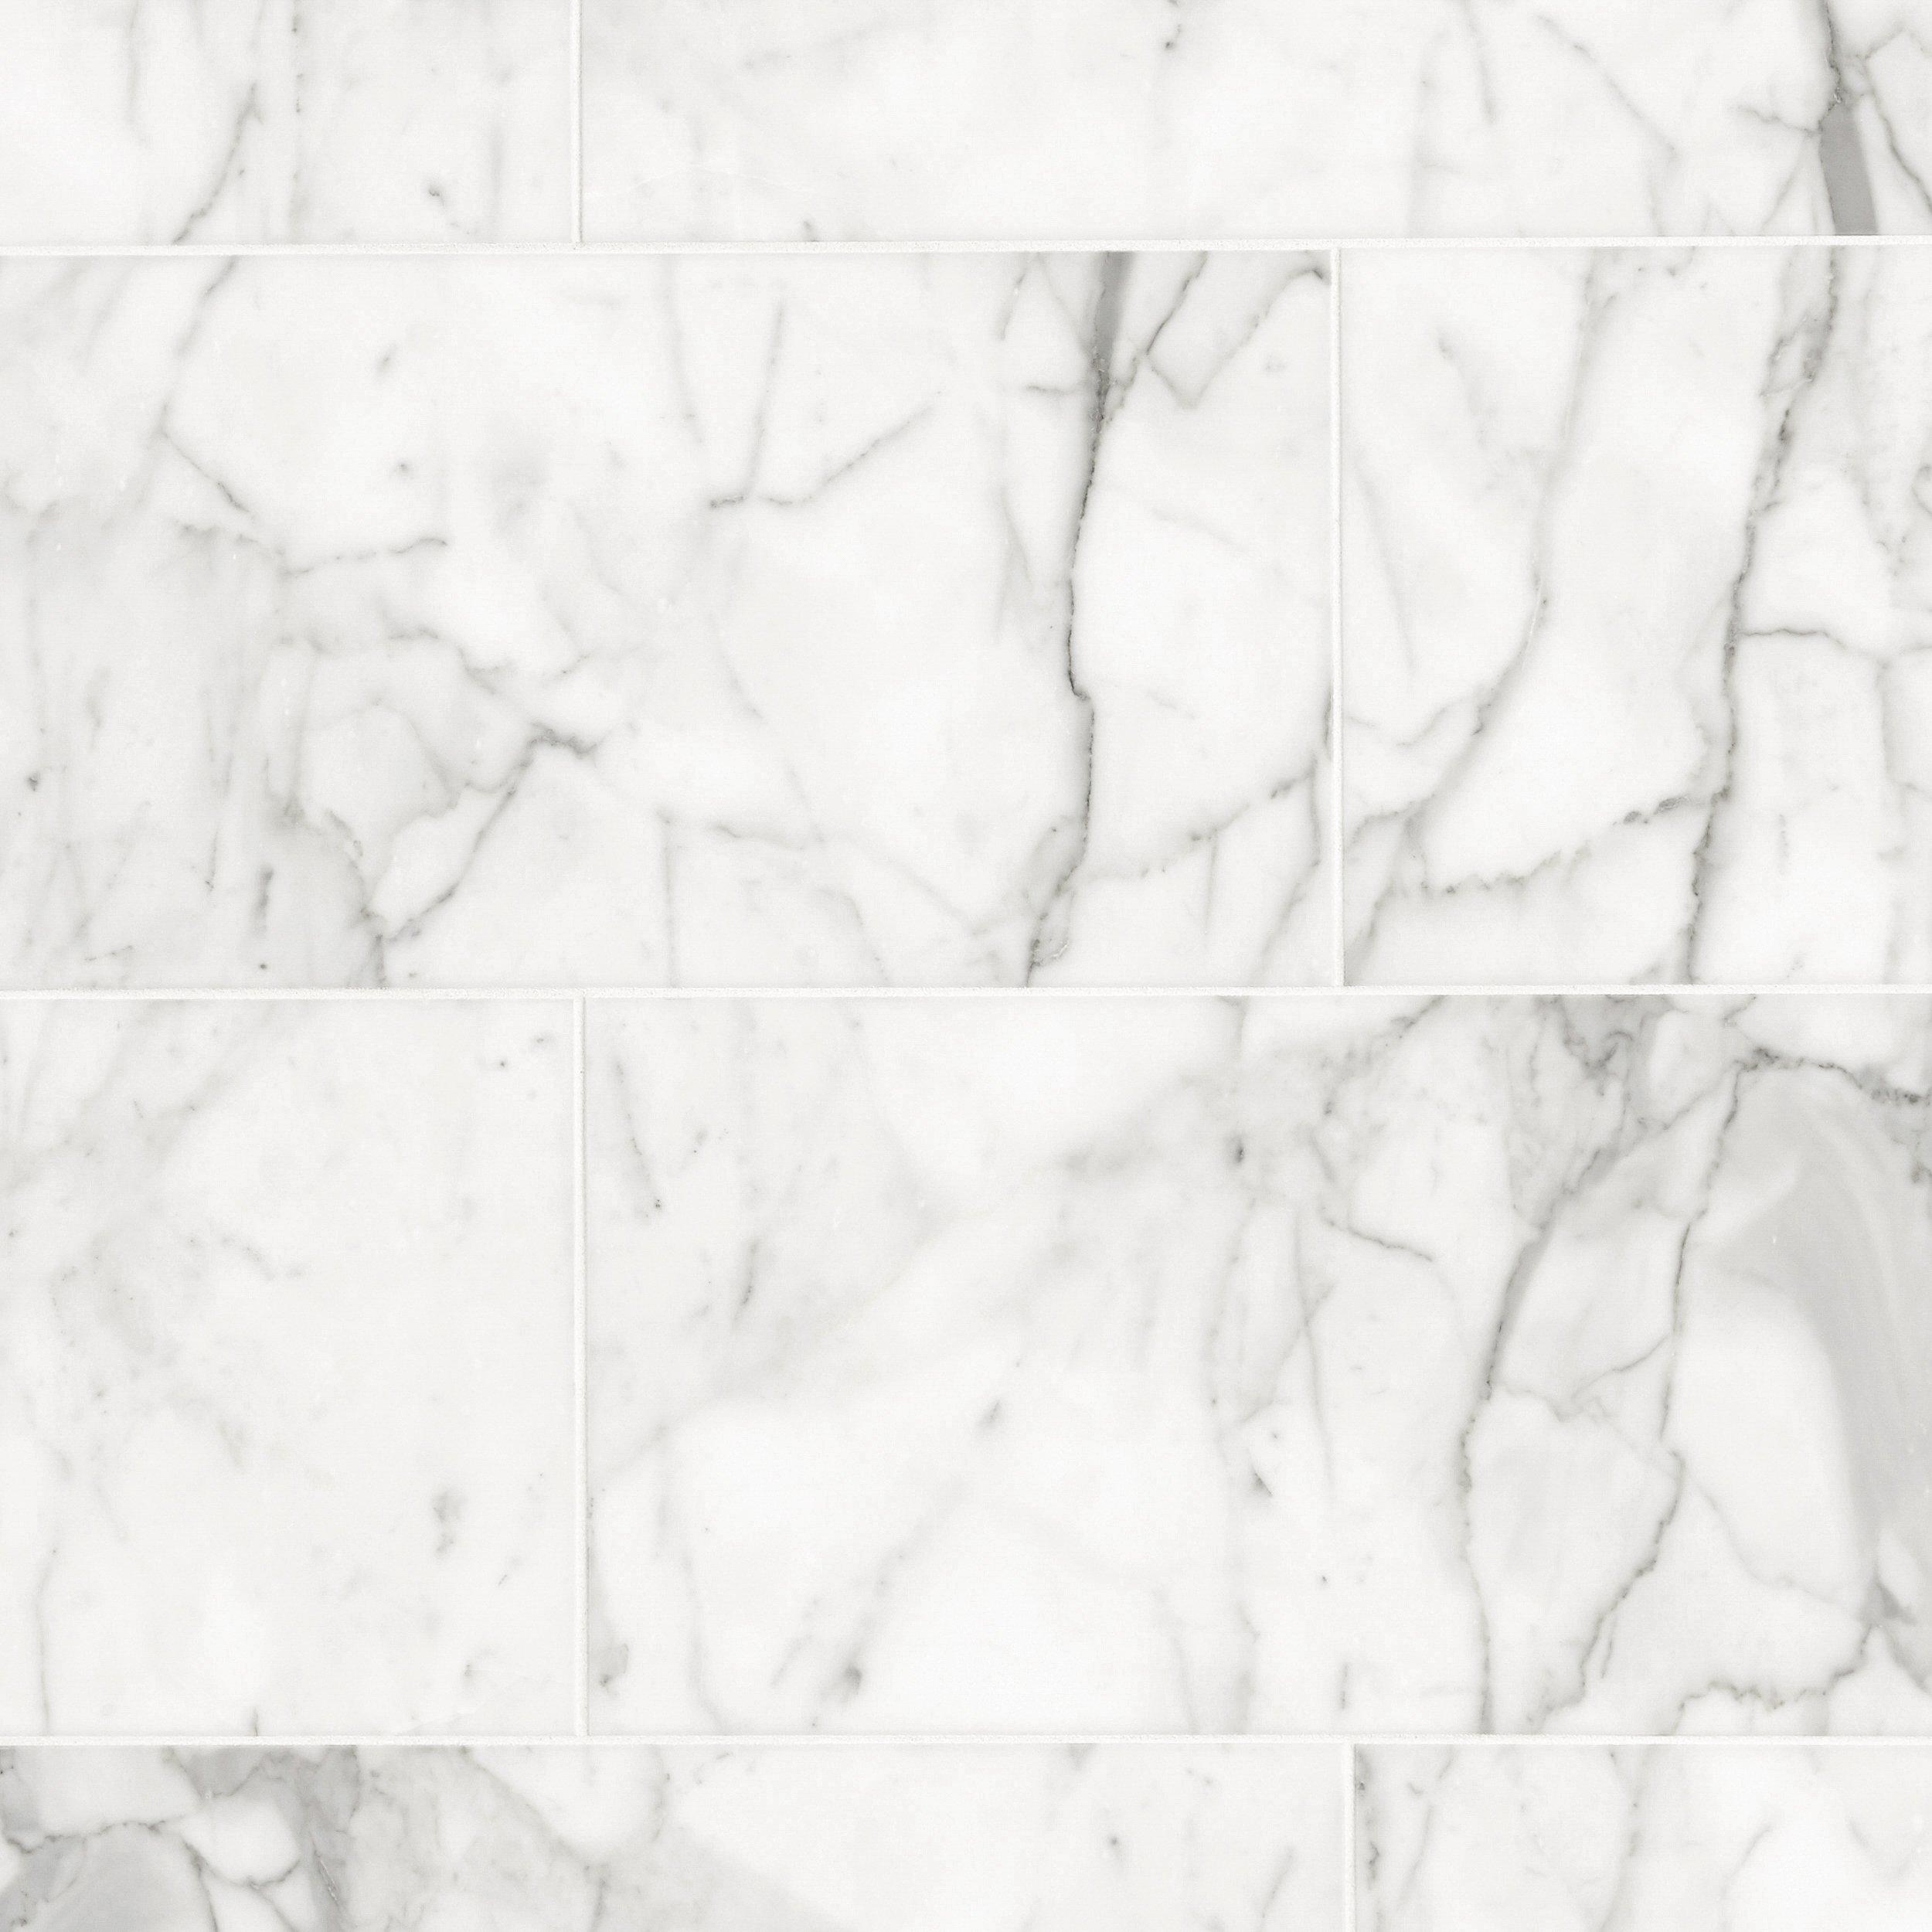 Calacatta Gold Polished Marble Tile 12 X 24 100115971 Floor And Decor